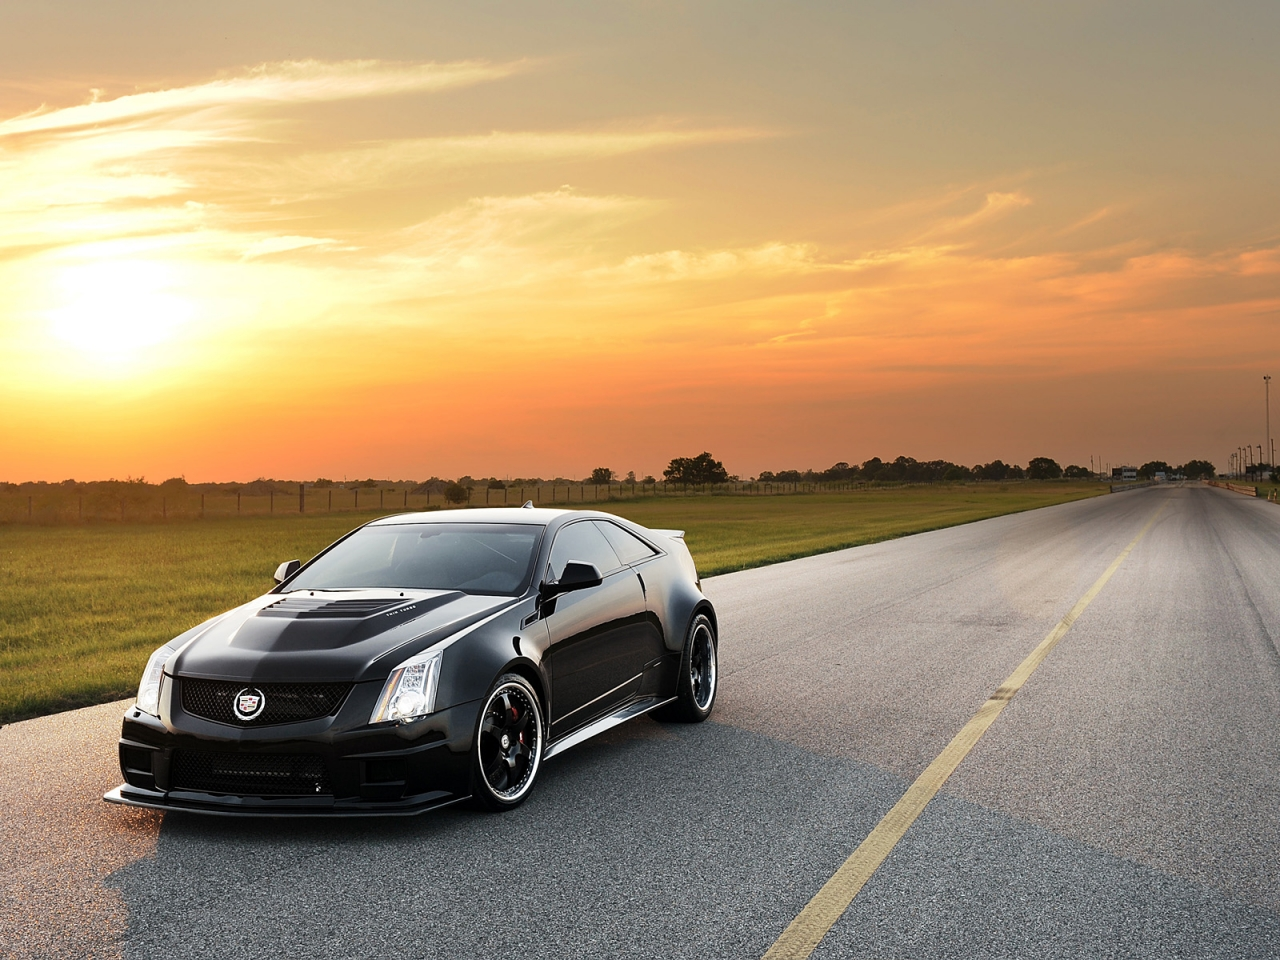 Hennessey Cadillac VR1200 - 1280x960